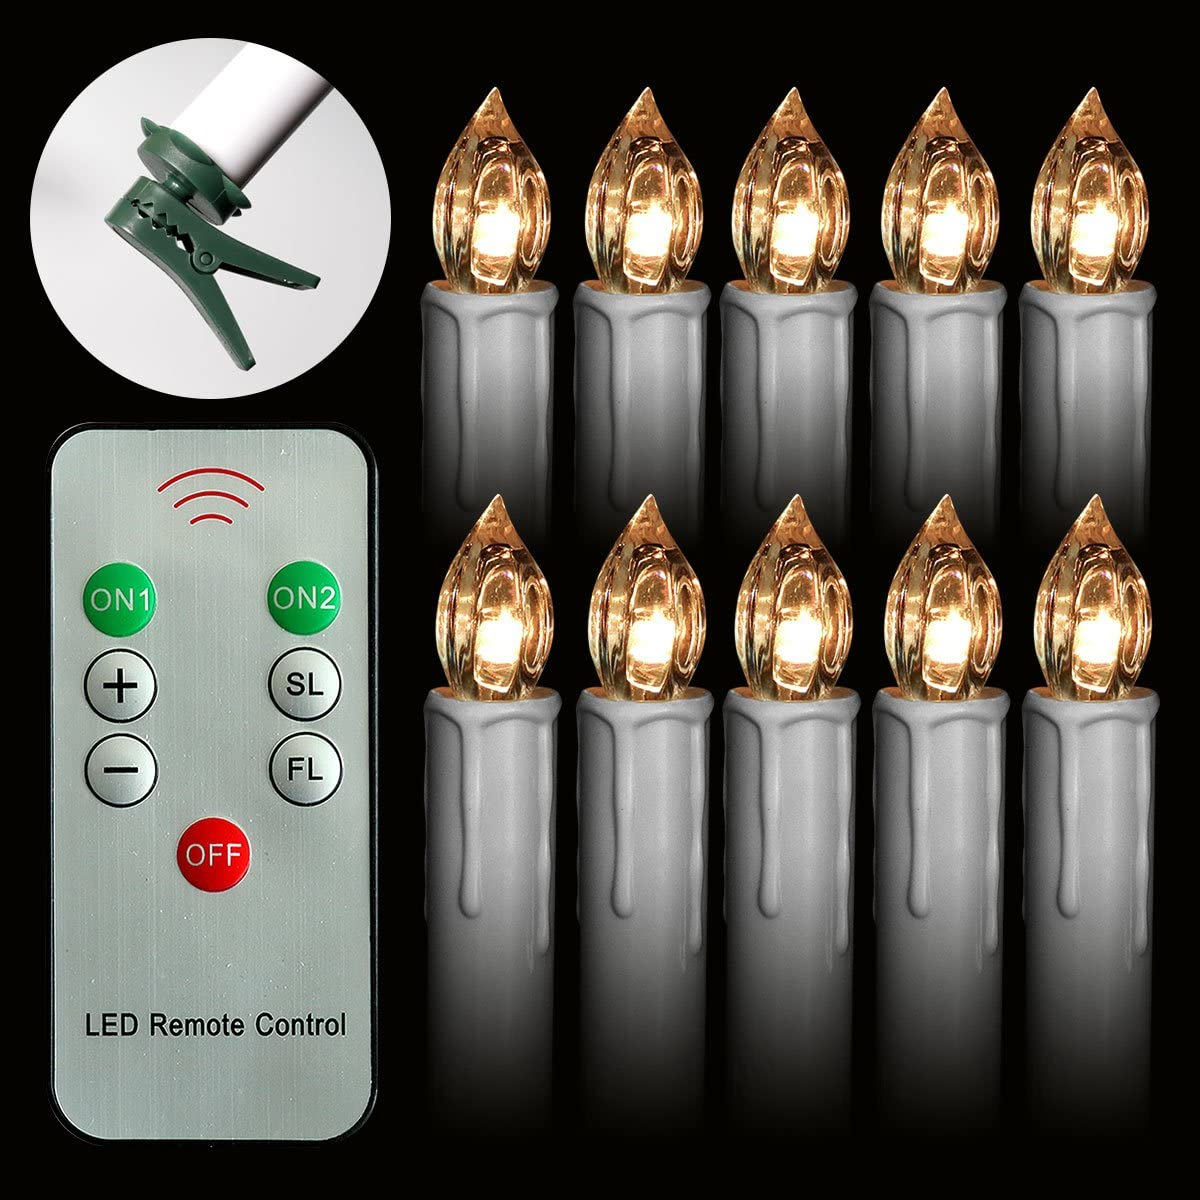 Set of 20 Warm White LED Taper Candles Lights with Remote Control Flameless Battery Operated Candles With Removeable Clips for Birthday Party Chandelier Christmas Thanksgiving Taper Candles Bulk